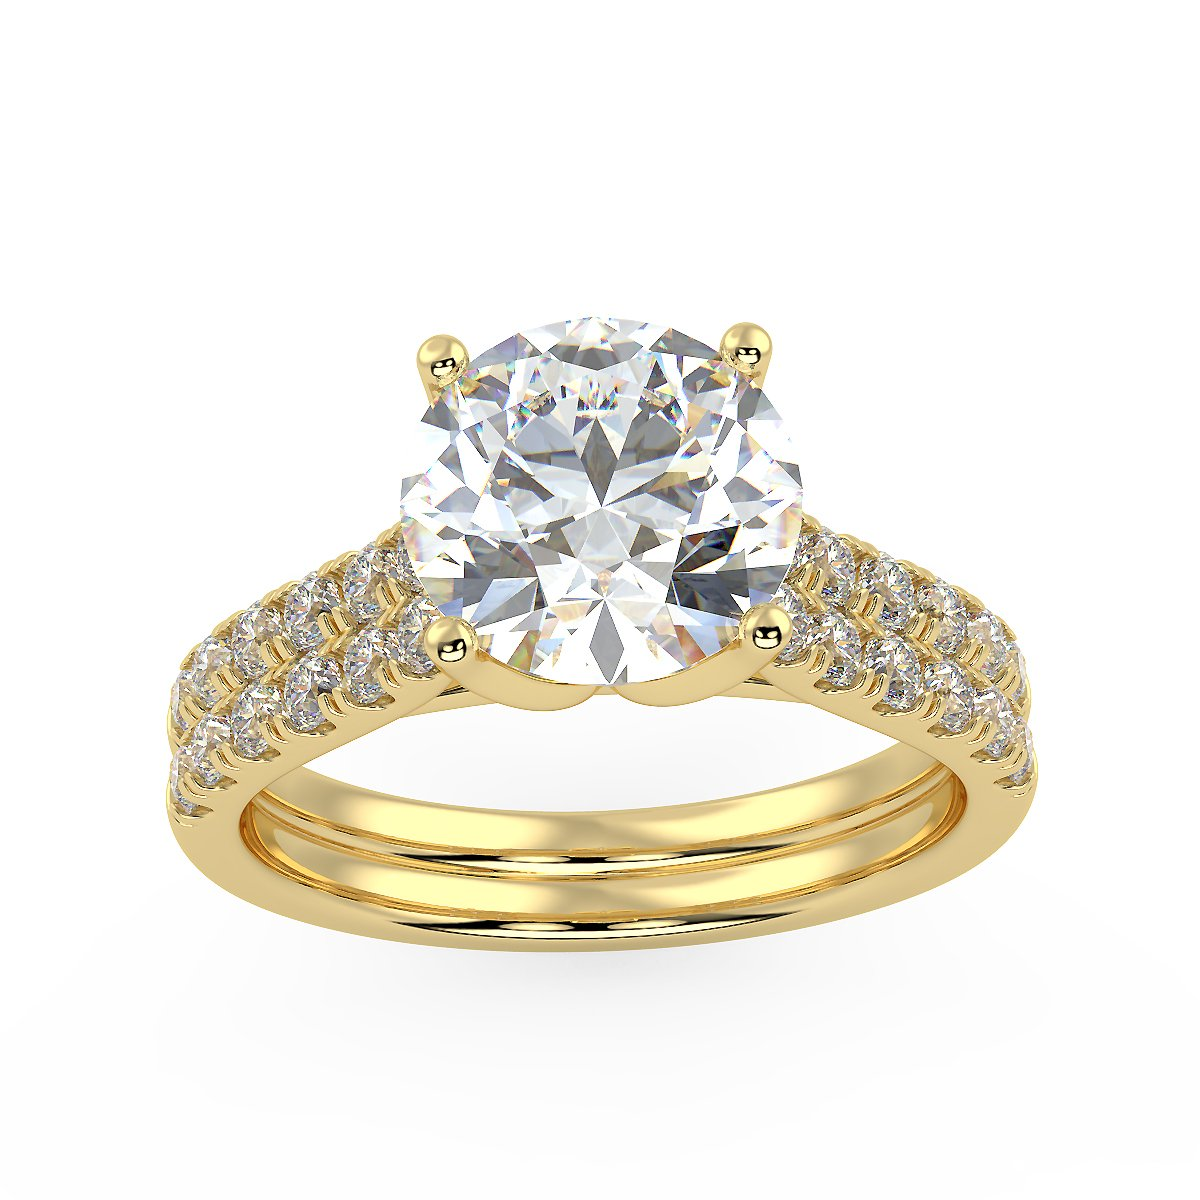 Bright Altair Engagement Ring in Yellow Gold